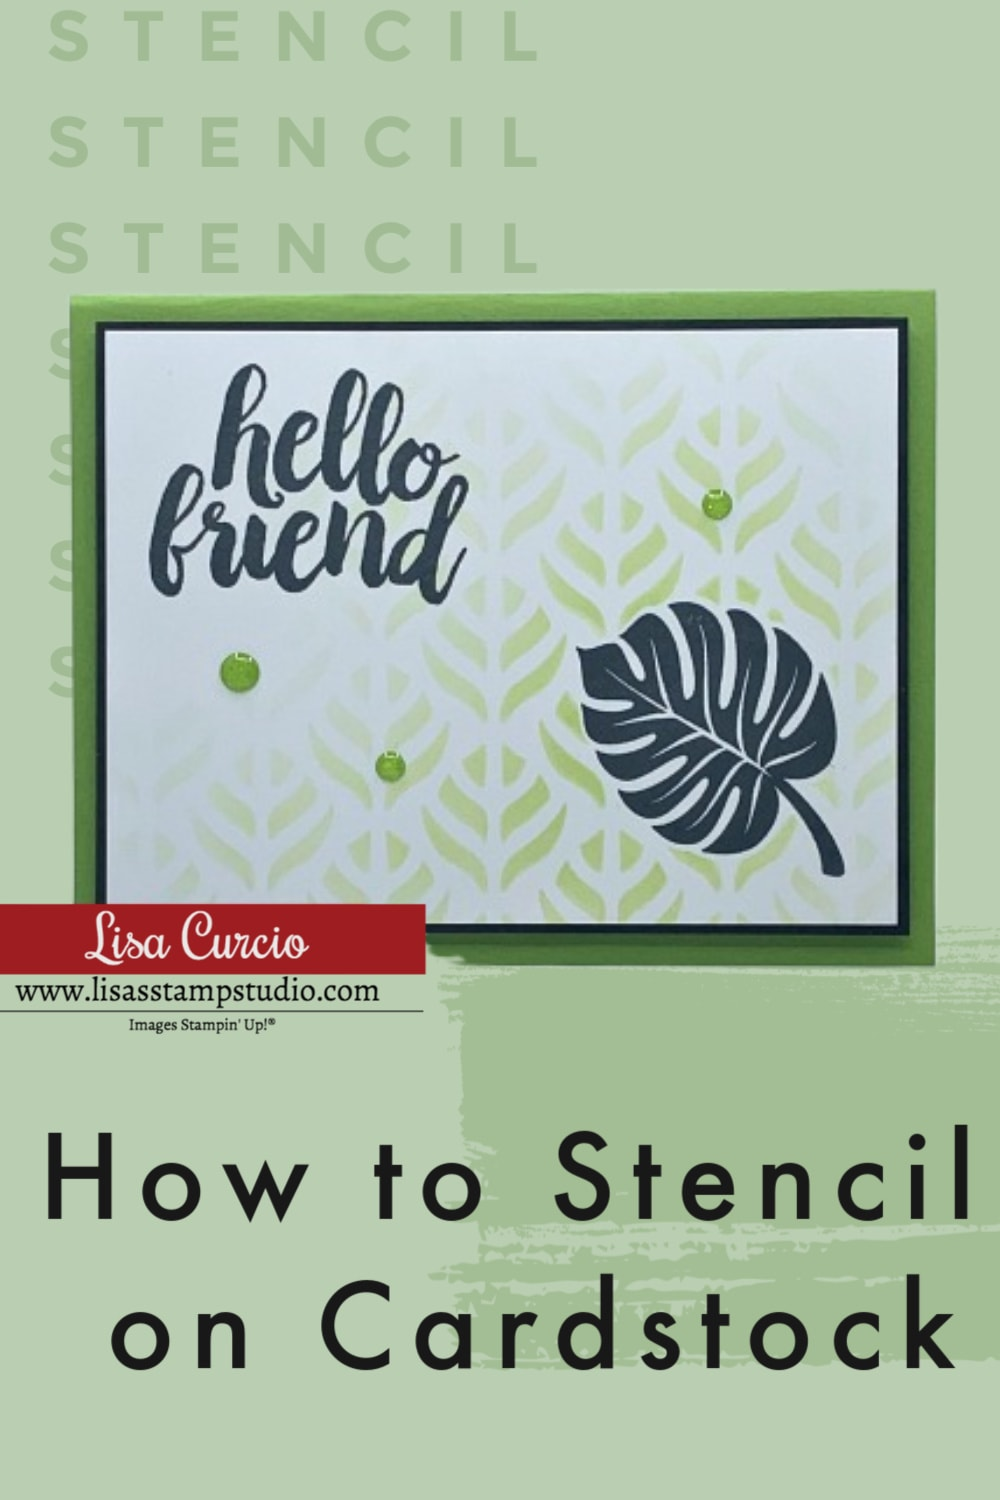 how-to-stencil-cards